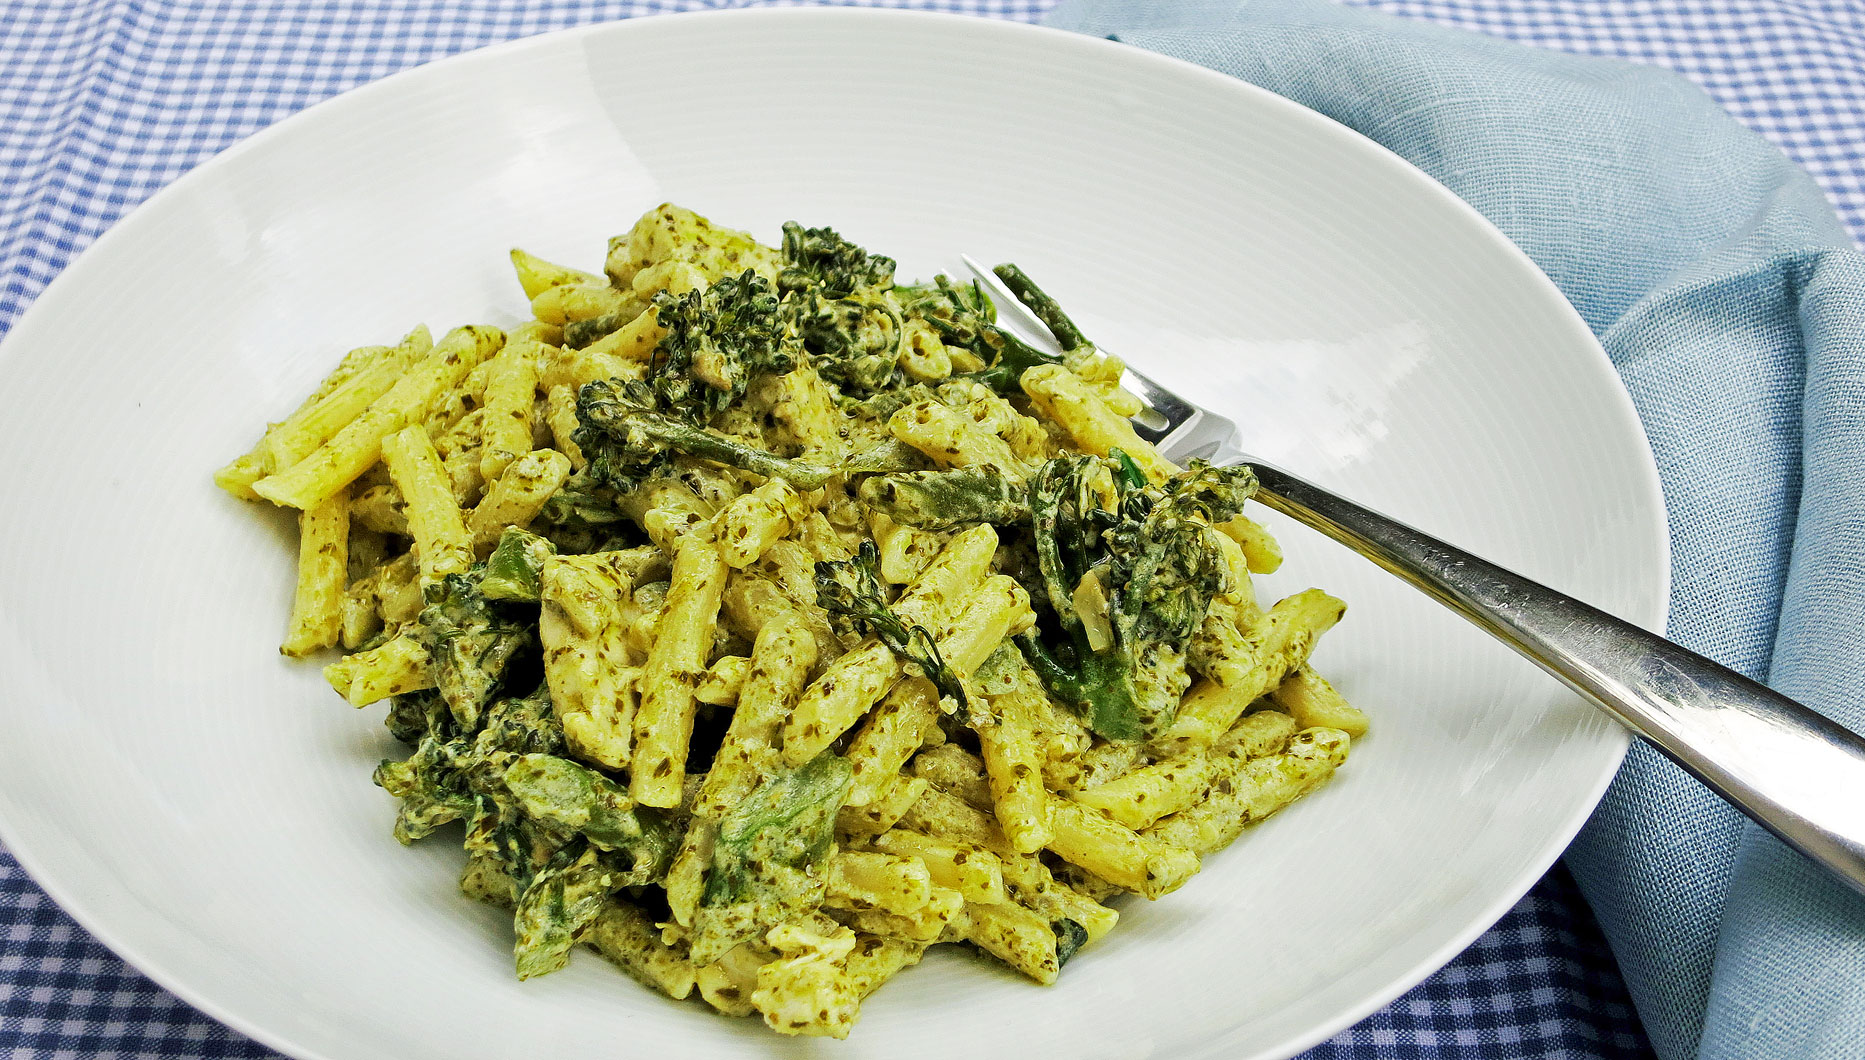 Creamy pesto penne with chicken and broccoli